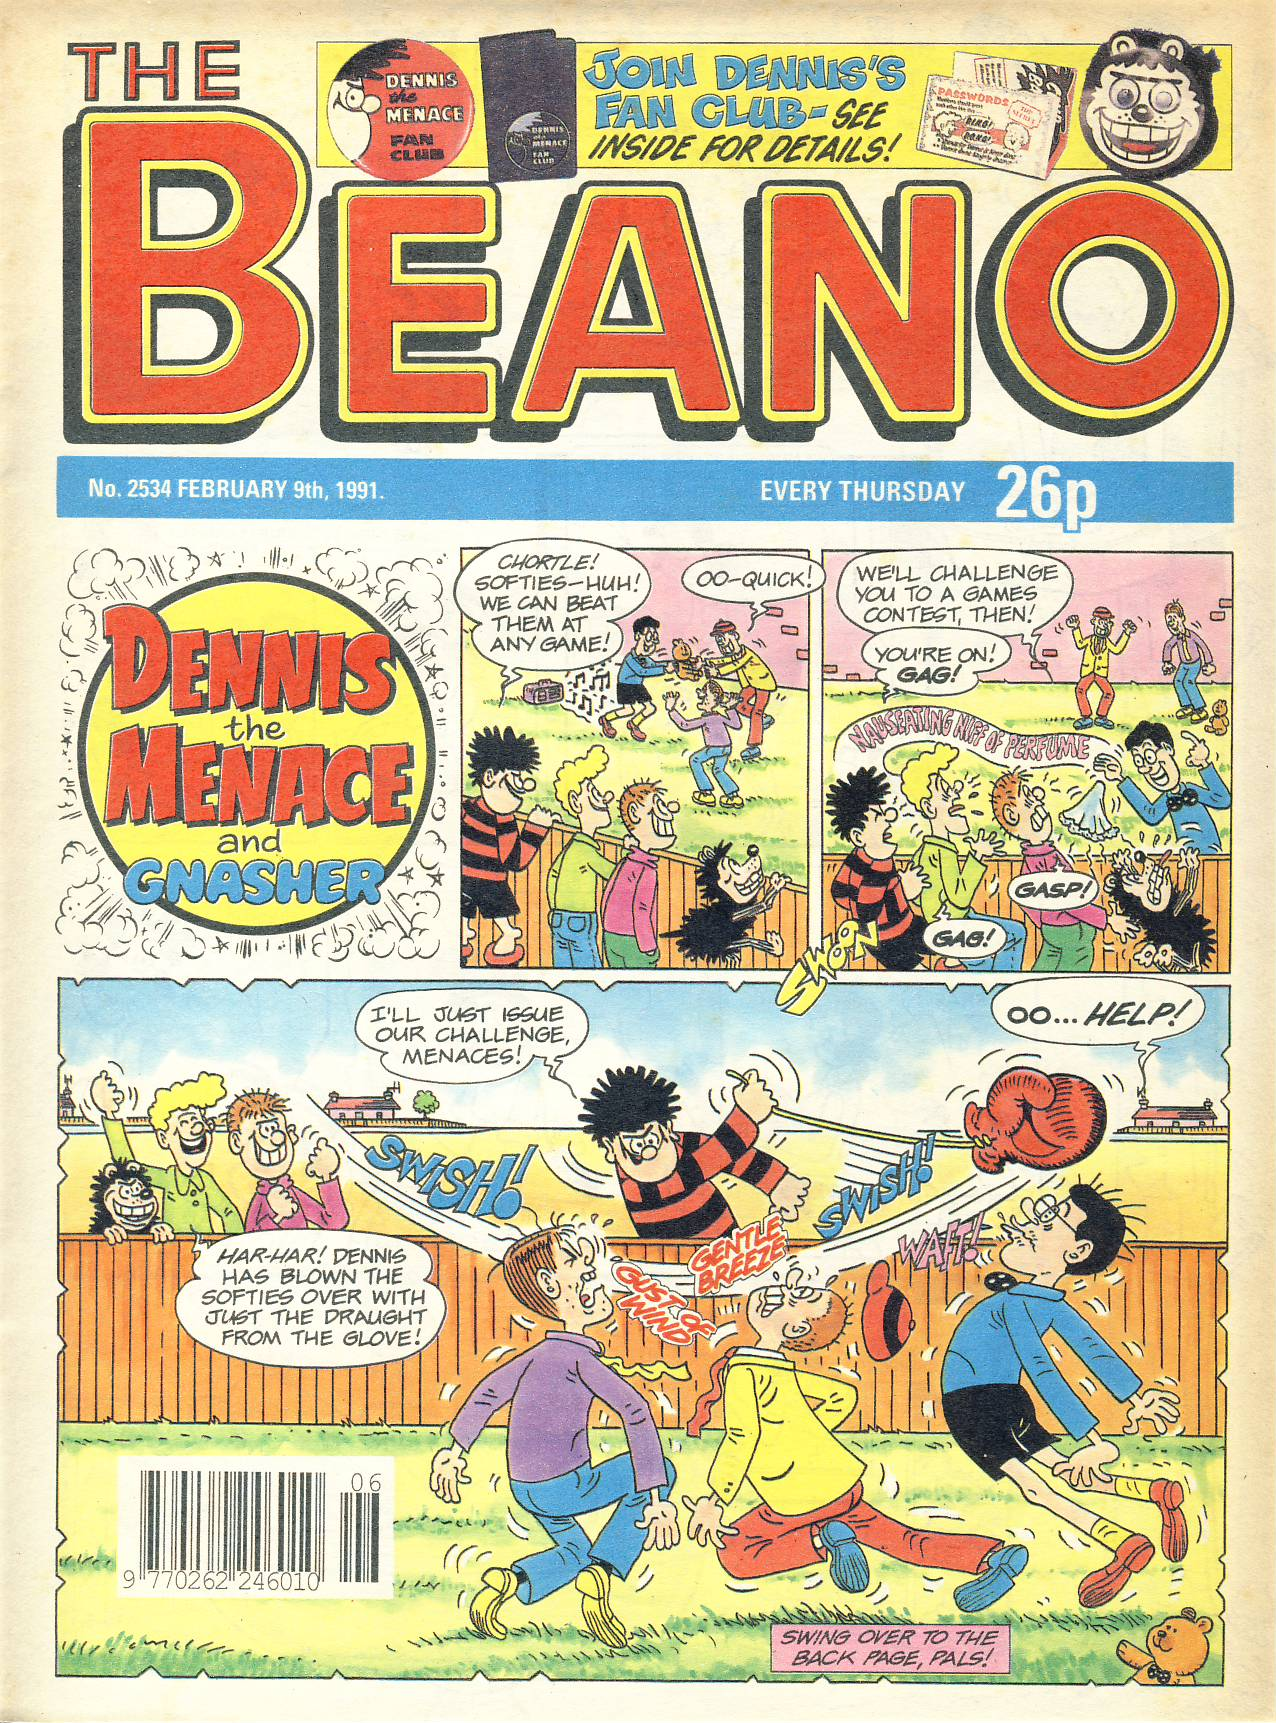 1991 February 9th BEANO vintage comic Good Gift Christmas Present Birthday Anniversary ref305a pre-owned item in good read condition.